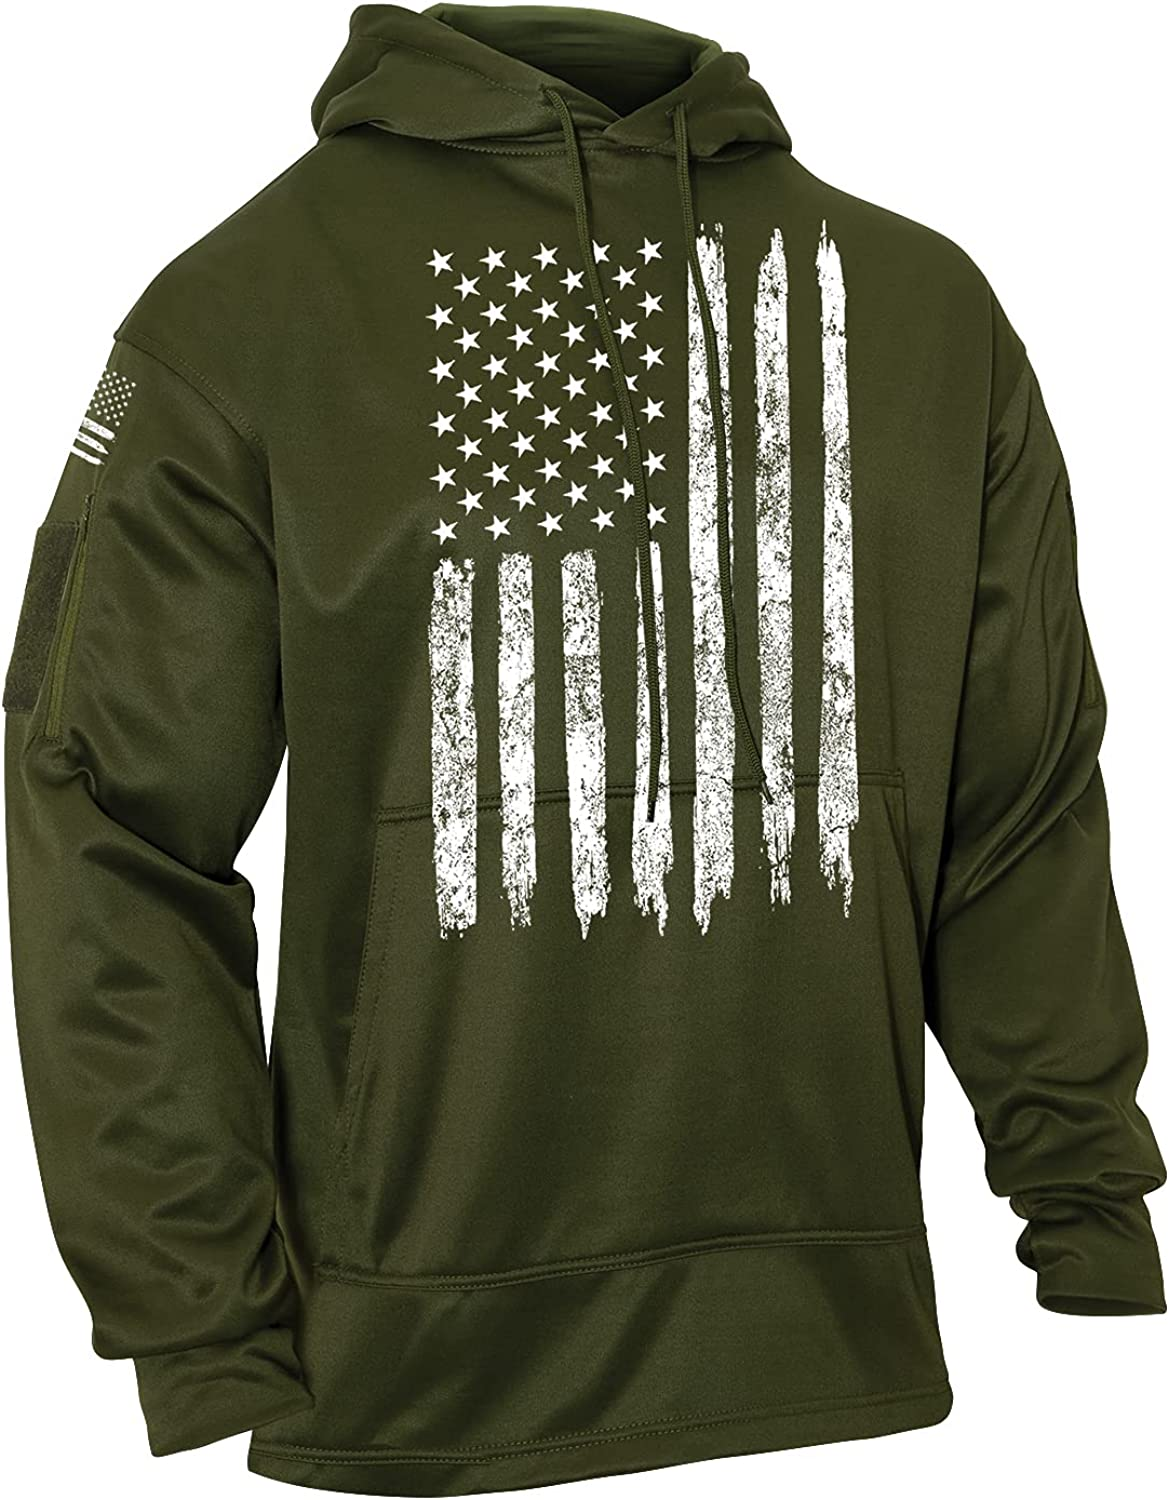 Rothco Max 77% OFF U.S. Flag Over item handling ☆ Hoodie Concealed Carry